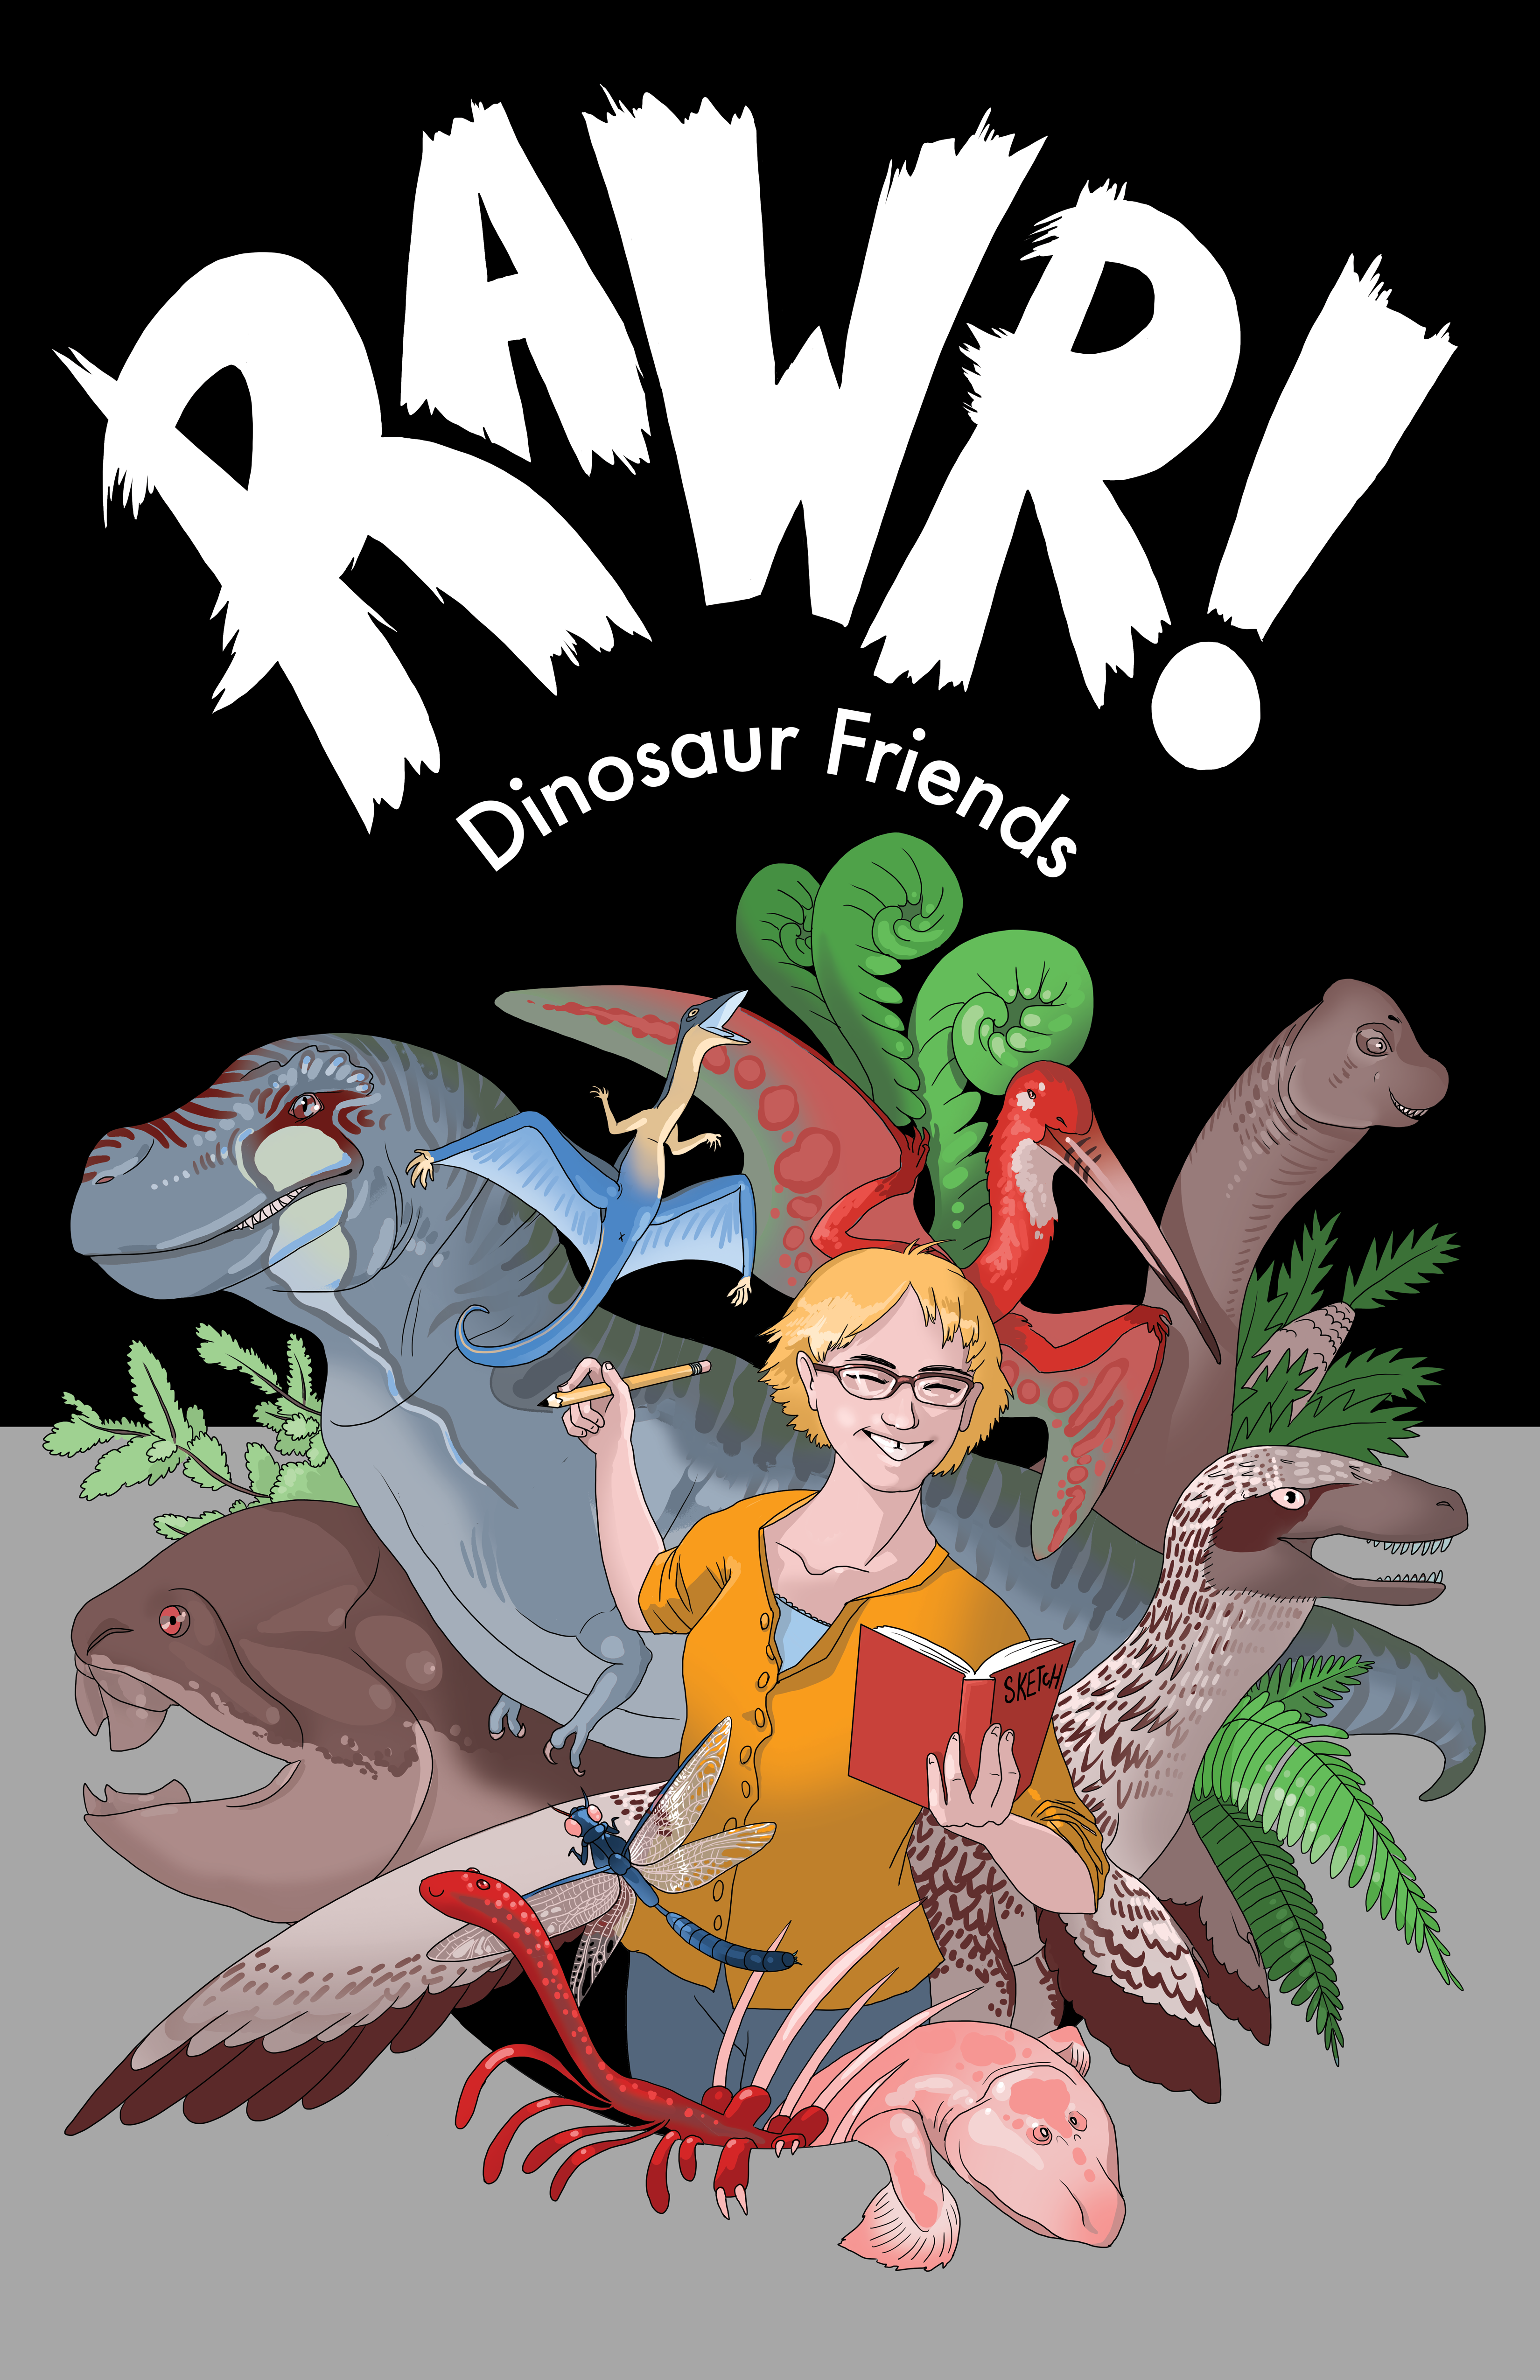 Cover of RAWR! Dinosaur Friends pitch. It displays several prehistoric creatures on a black background with a self portrait of the artist in the middle.